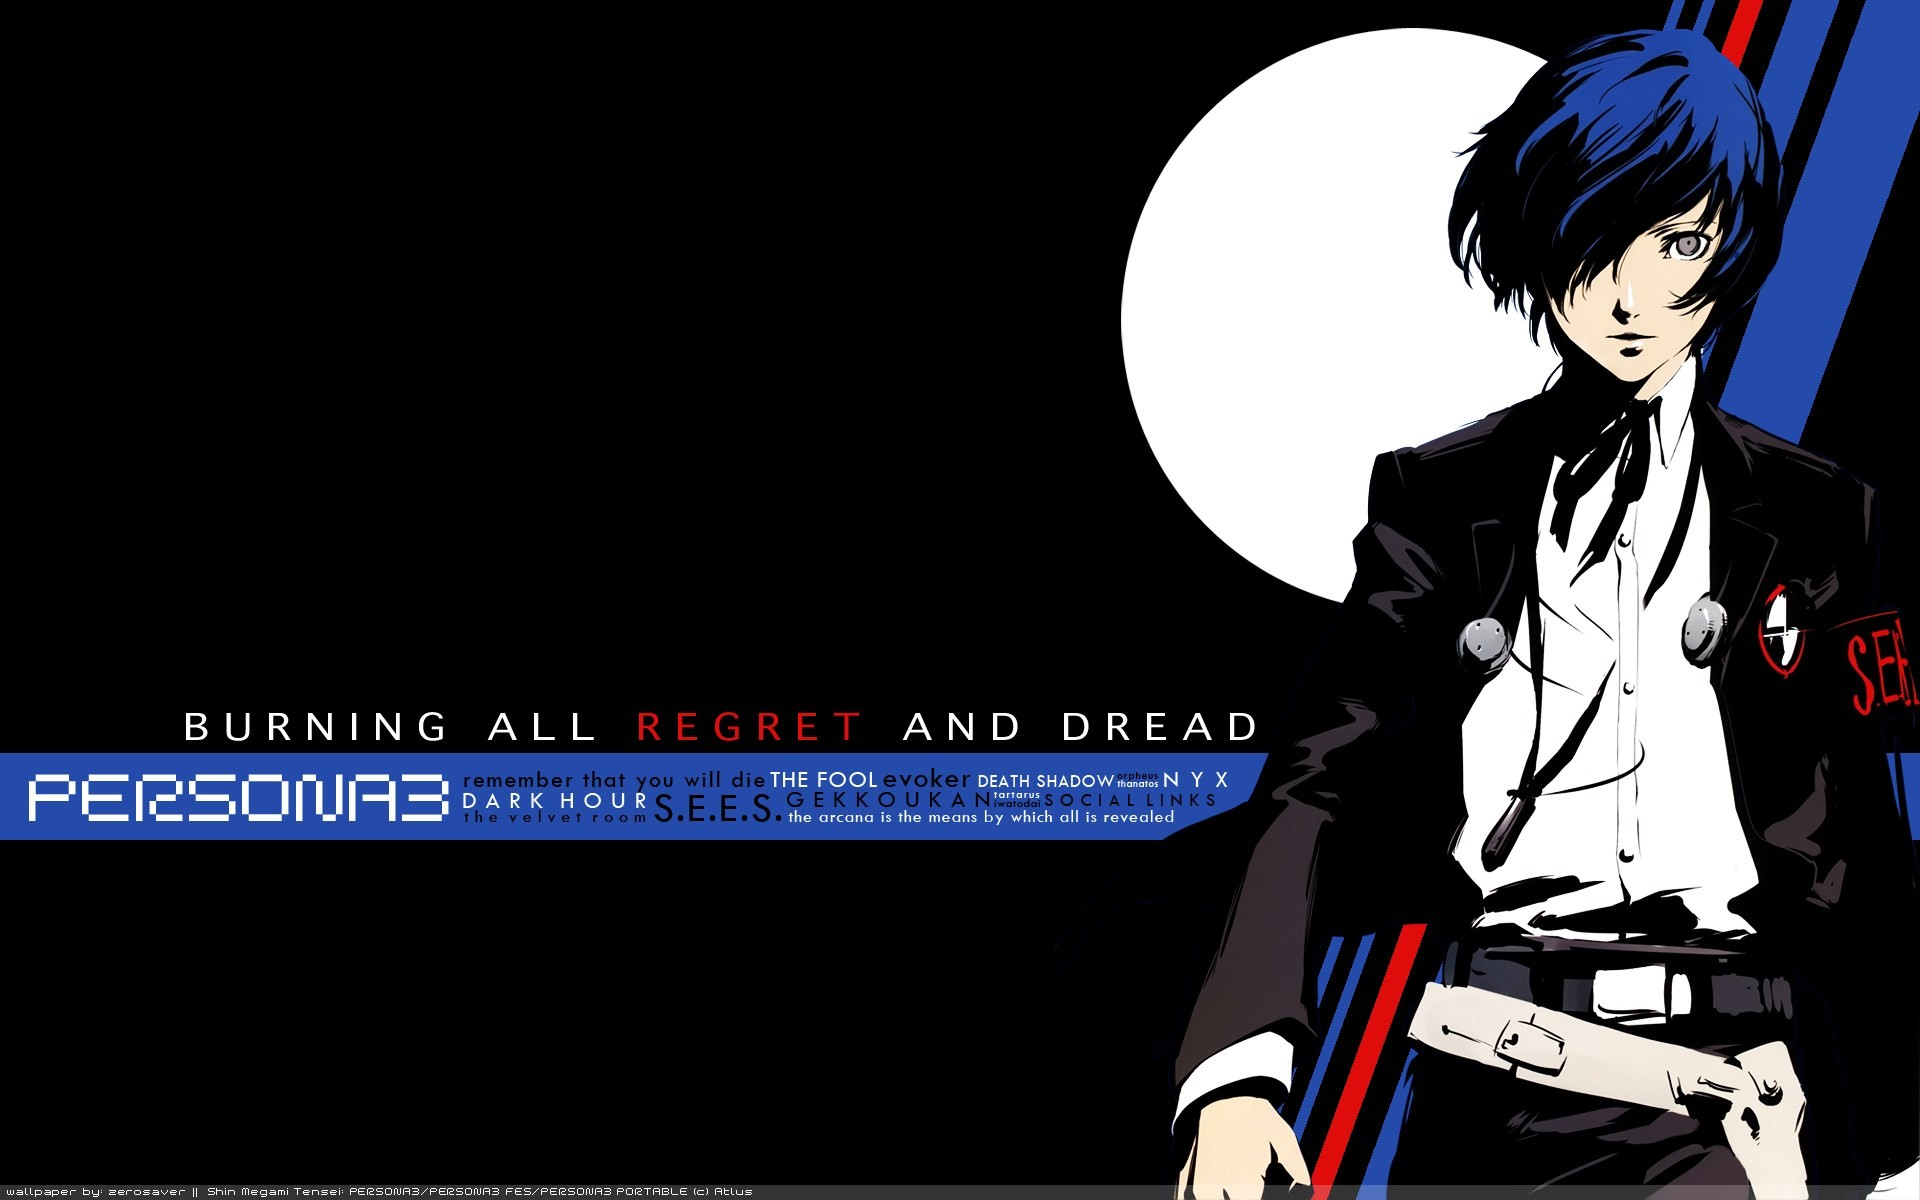 1920x1200 desktop wallpaper for persona 3 - persona 3 category